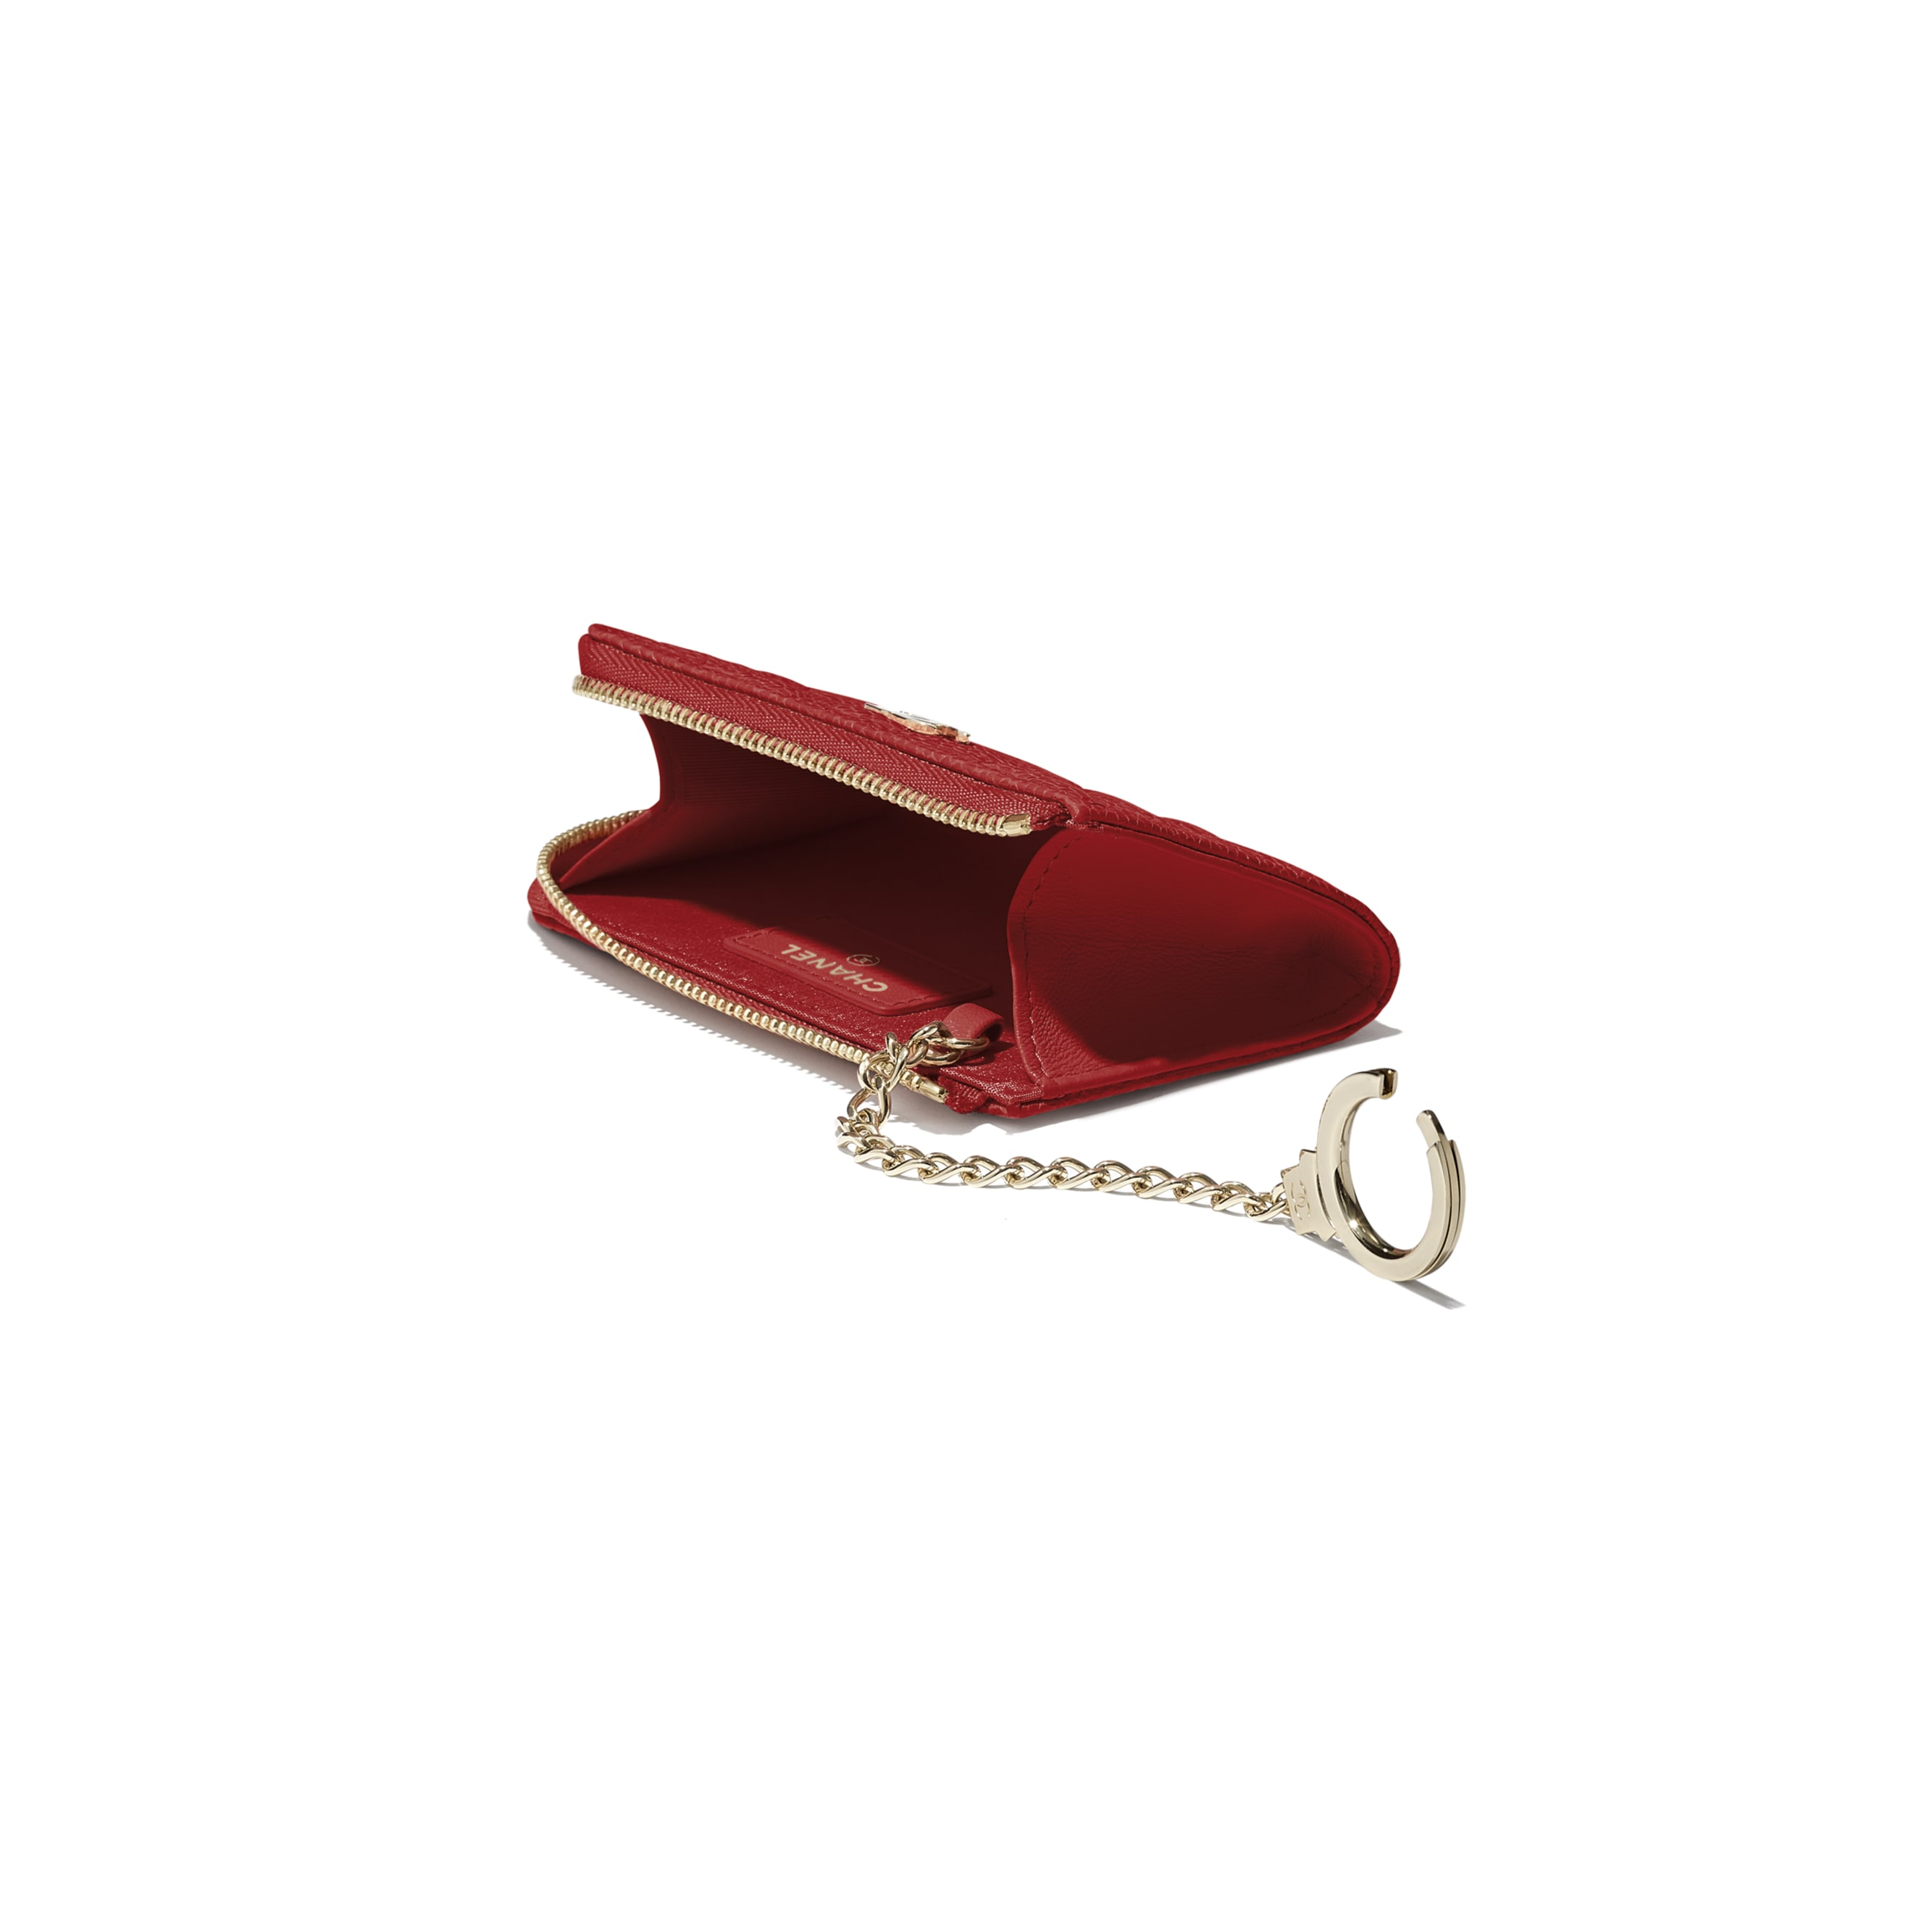 Key Holder - Red - Grained Shiny Calfskin & Gold-Tone Metal - Extra view - see standard sized version